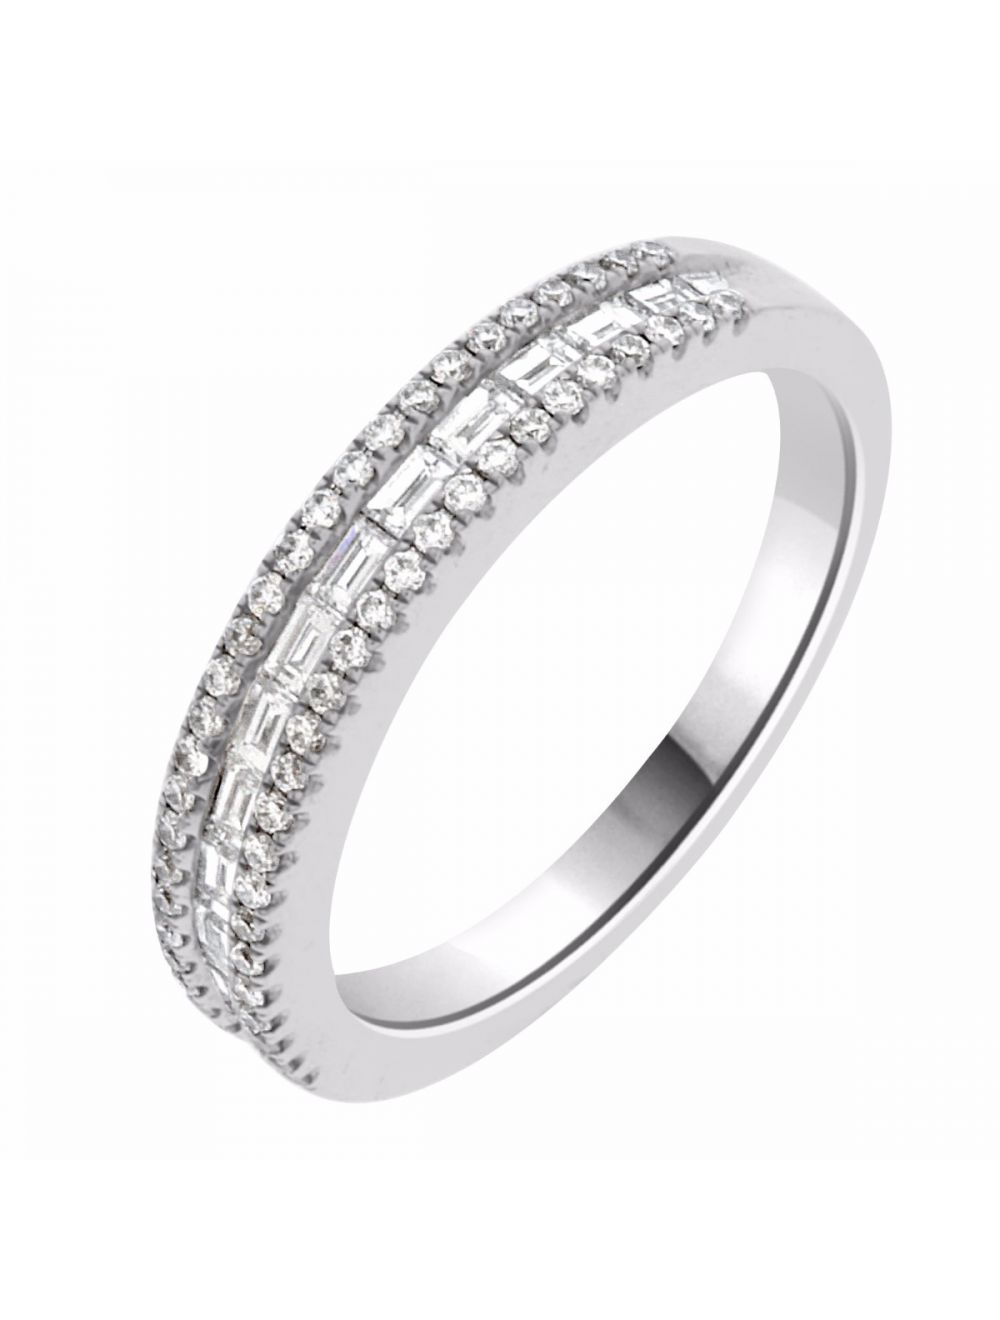 Baguette Wedding Band.18ct White Gold Baguette And Round Diamond Wedding Band